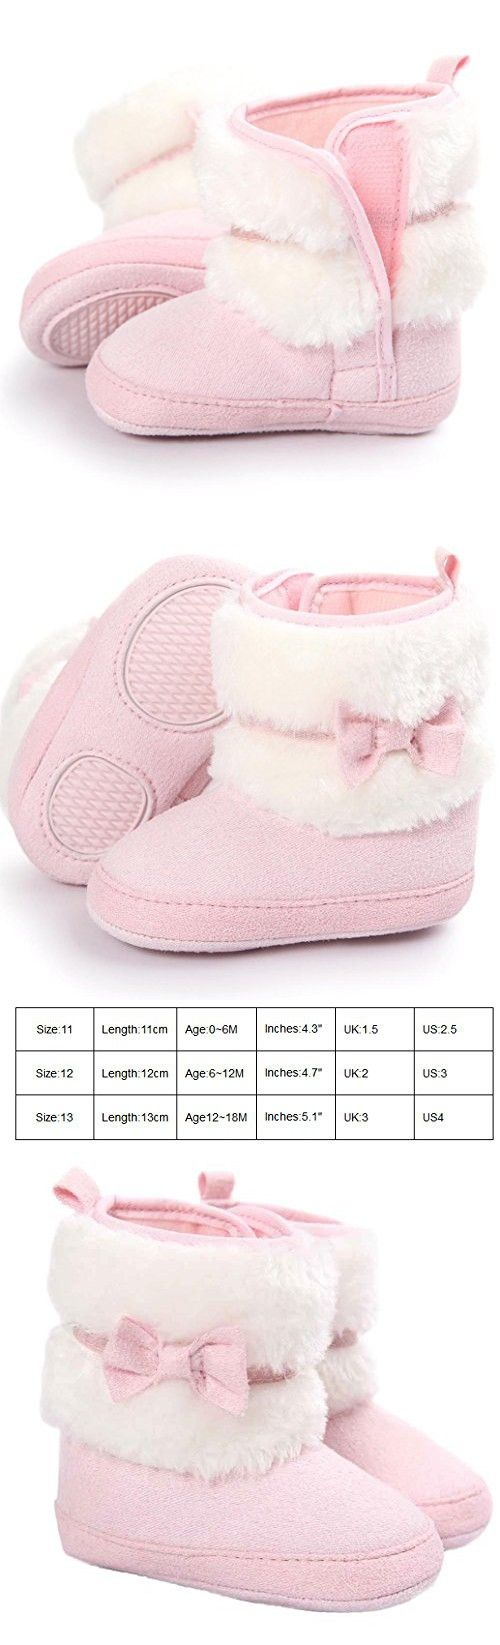 Voberry Baby Toddler Girls Boys Winter Warm Snow Boot Fur Trimmed Boots Outdoor (6~12Month, Pink)